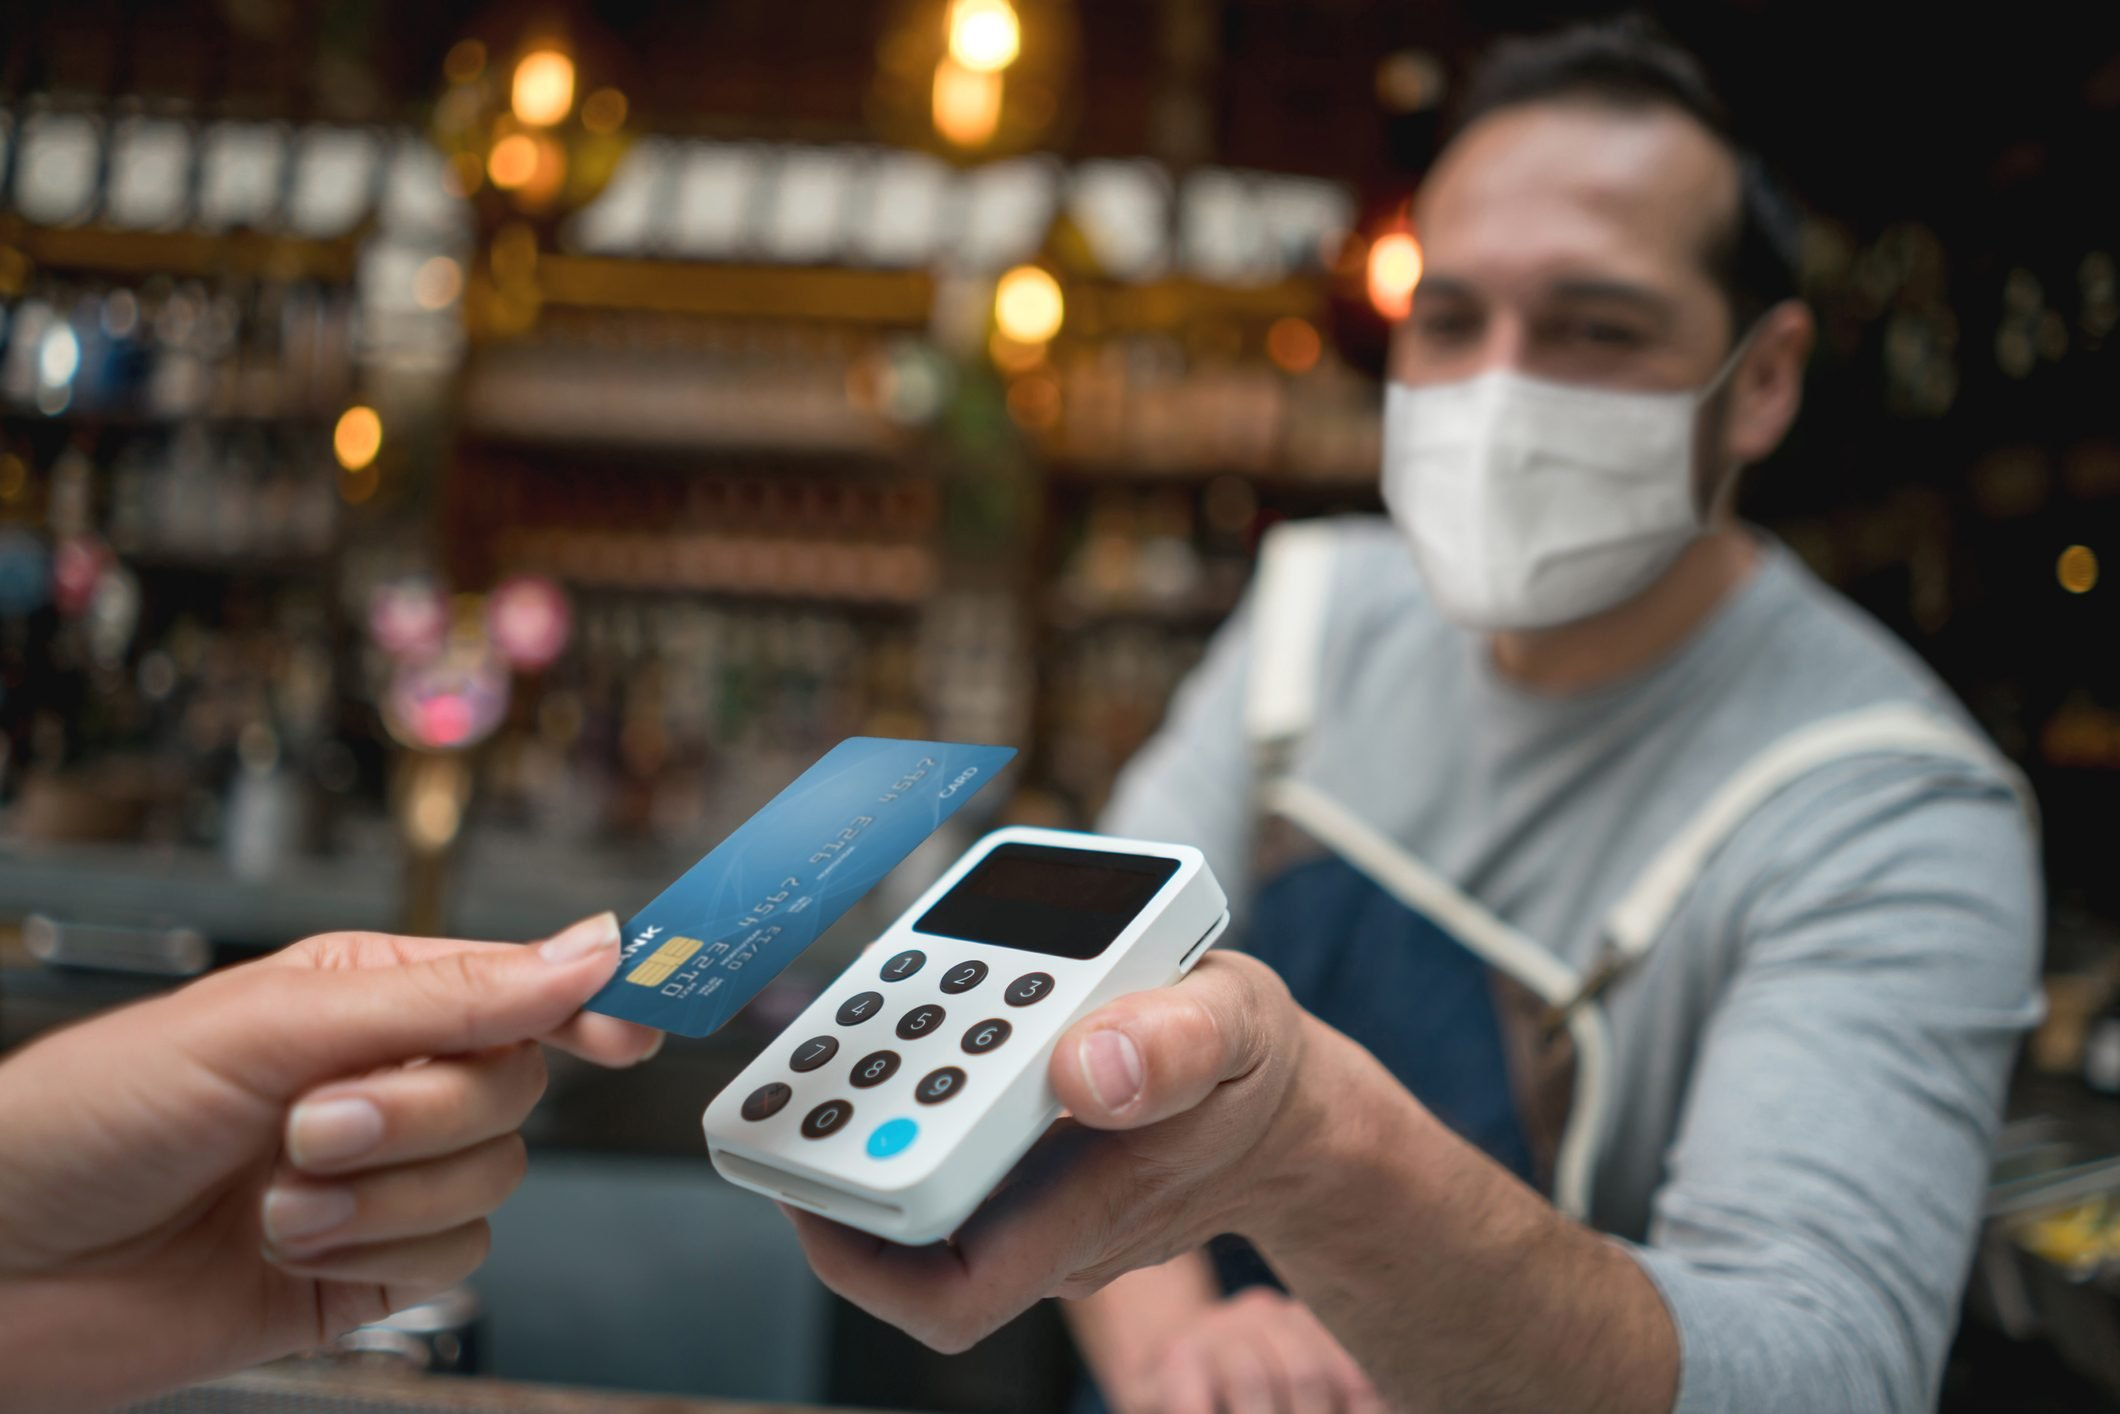 Waiter wearing a facemask while getting a contactless payment at a restaurant